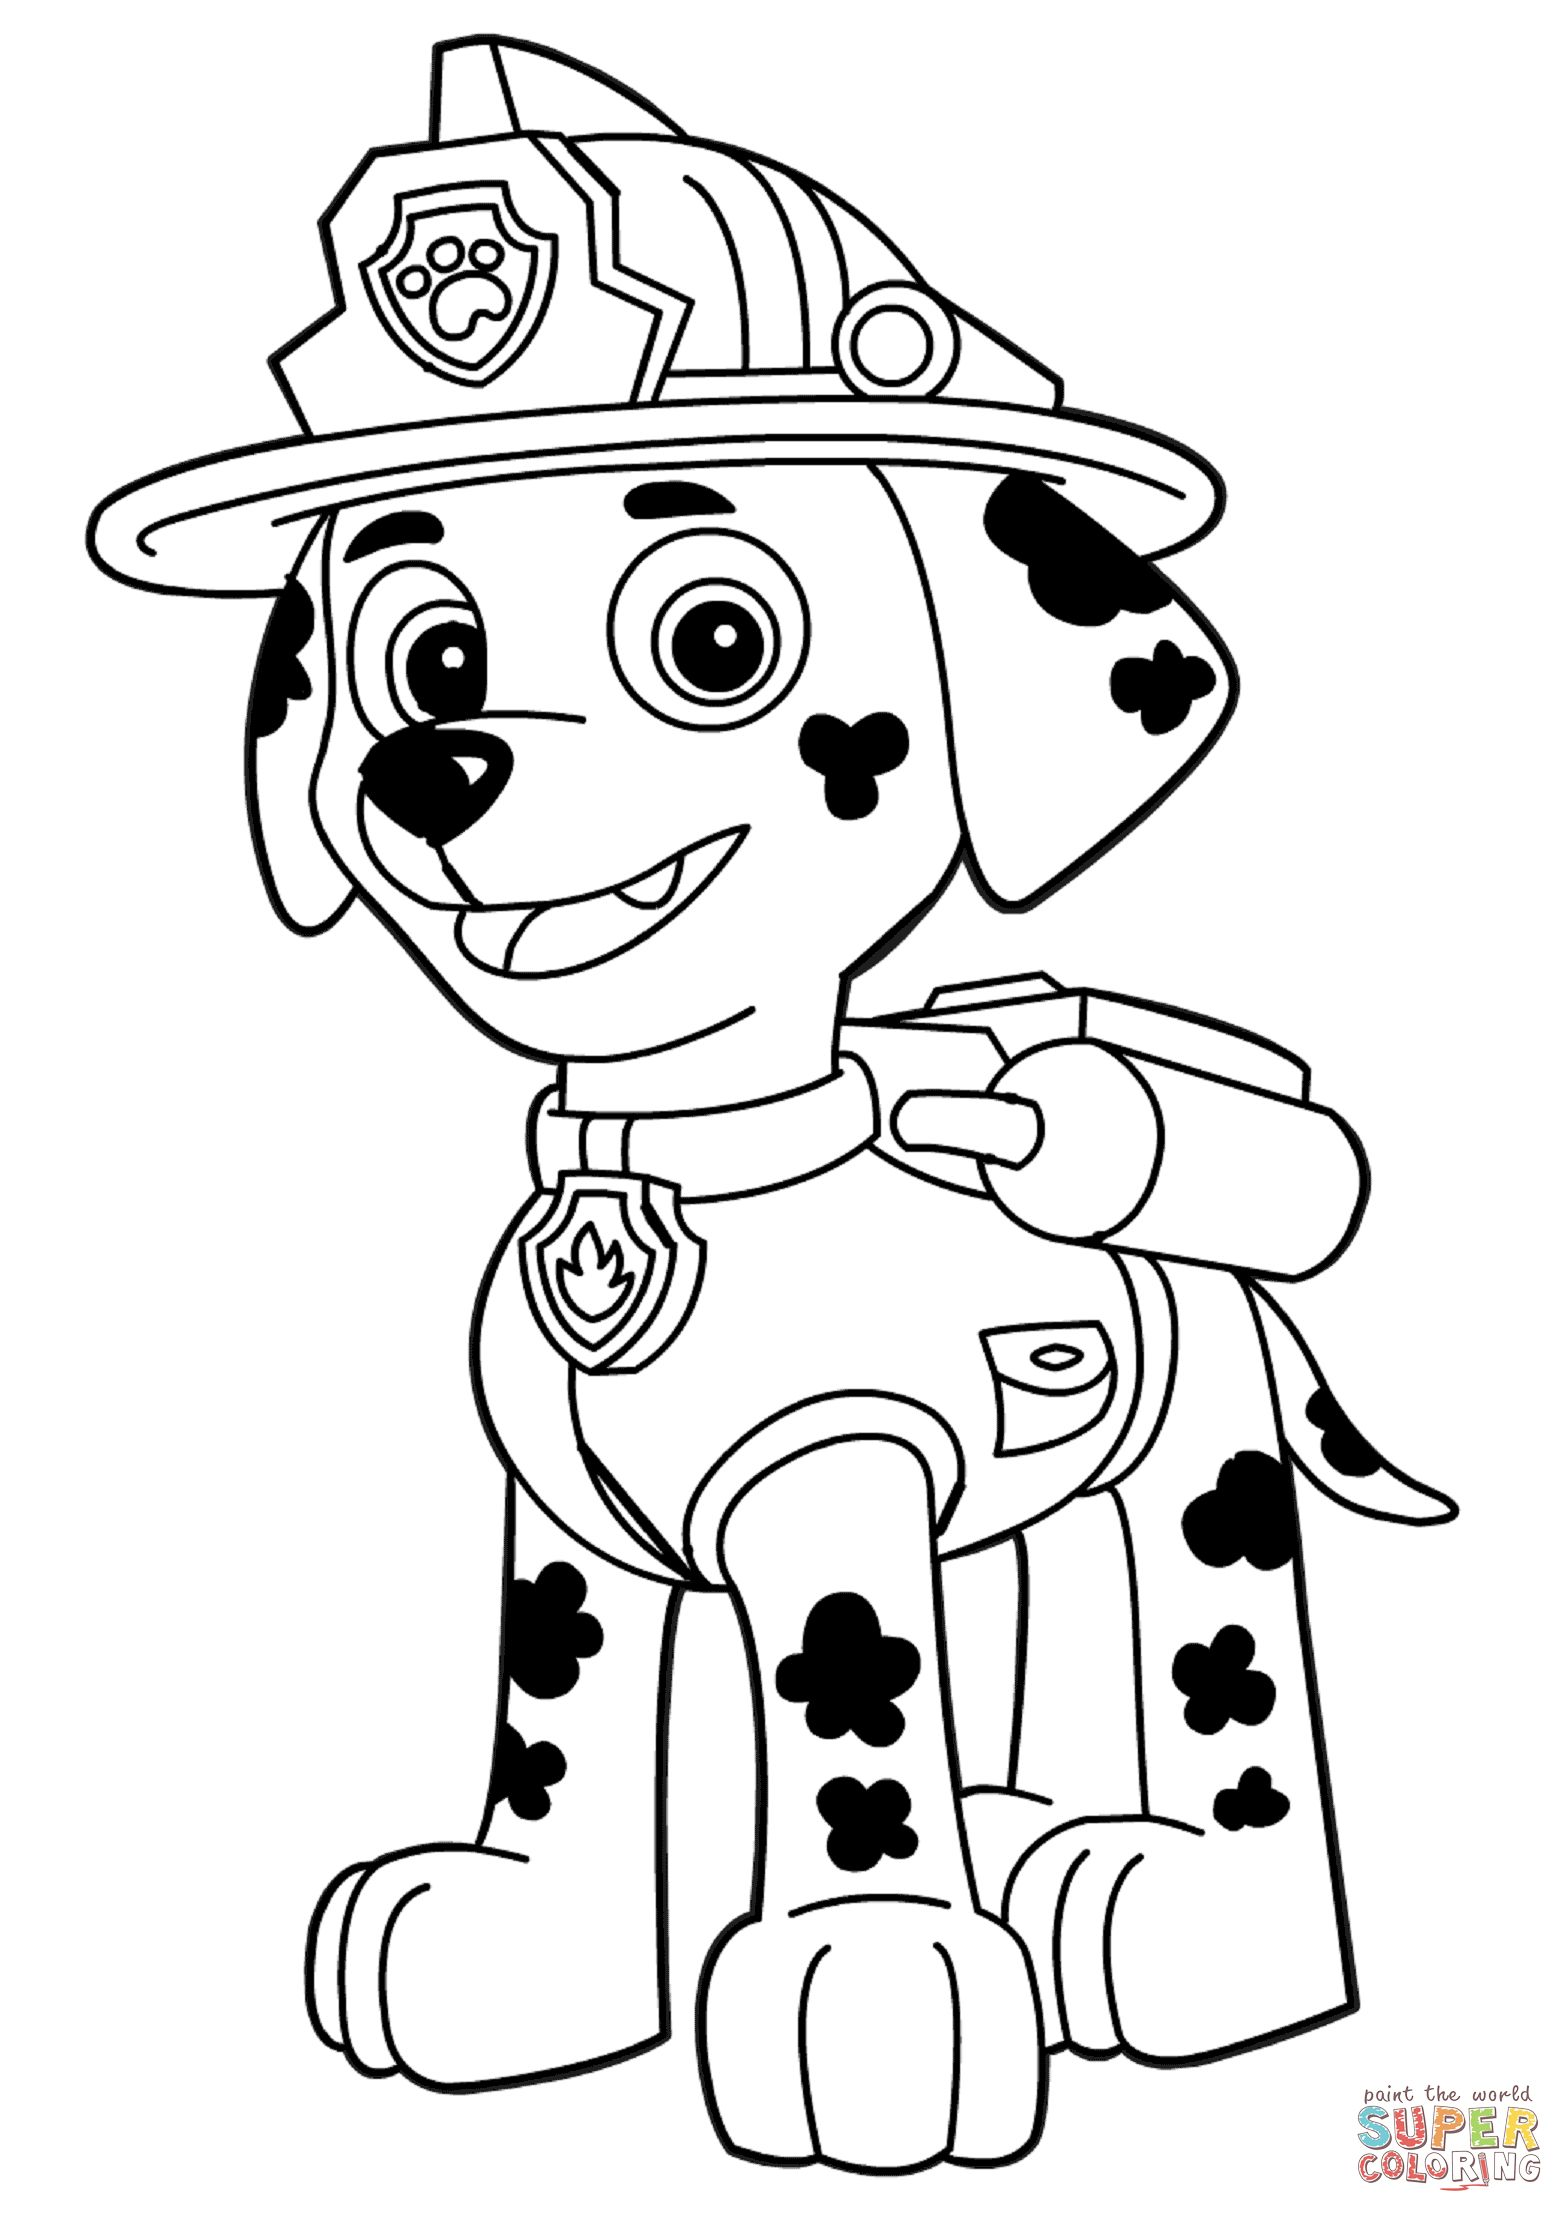 27++ Paw patrol clipart black and white ideas in 2021